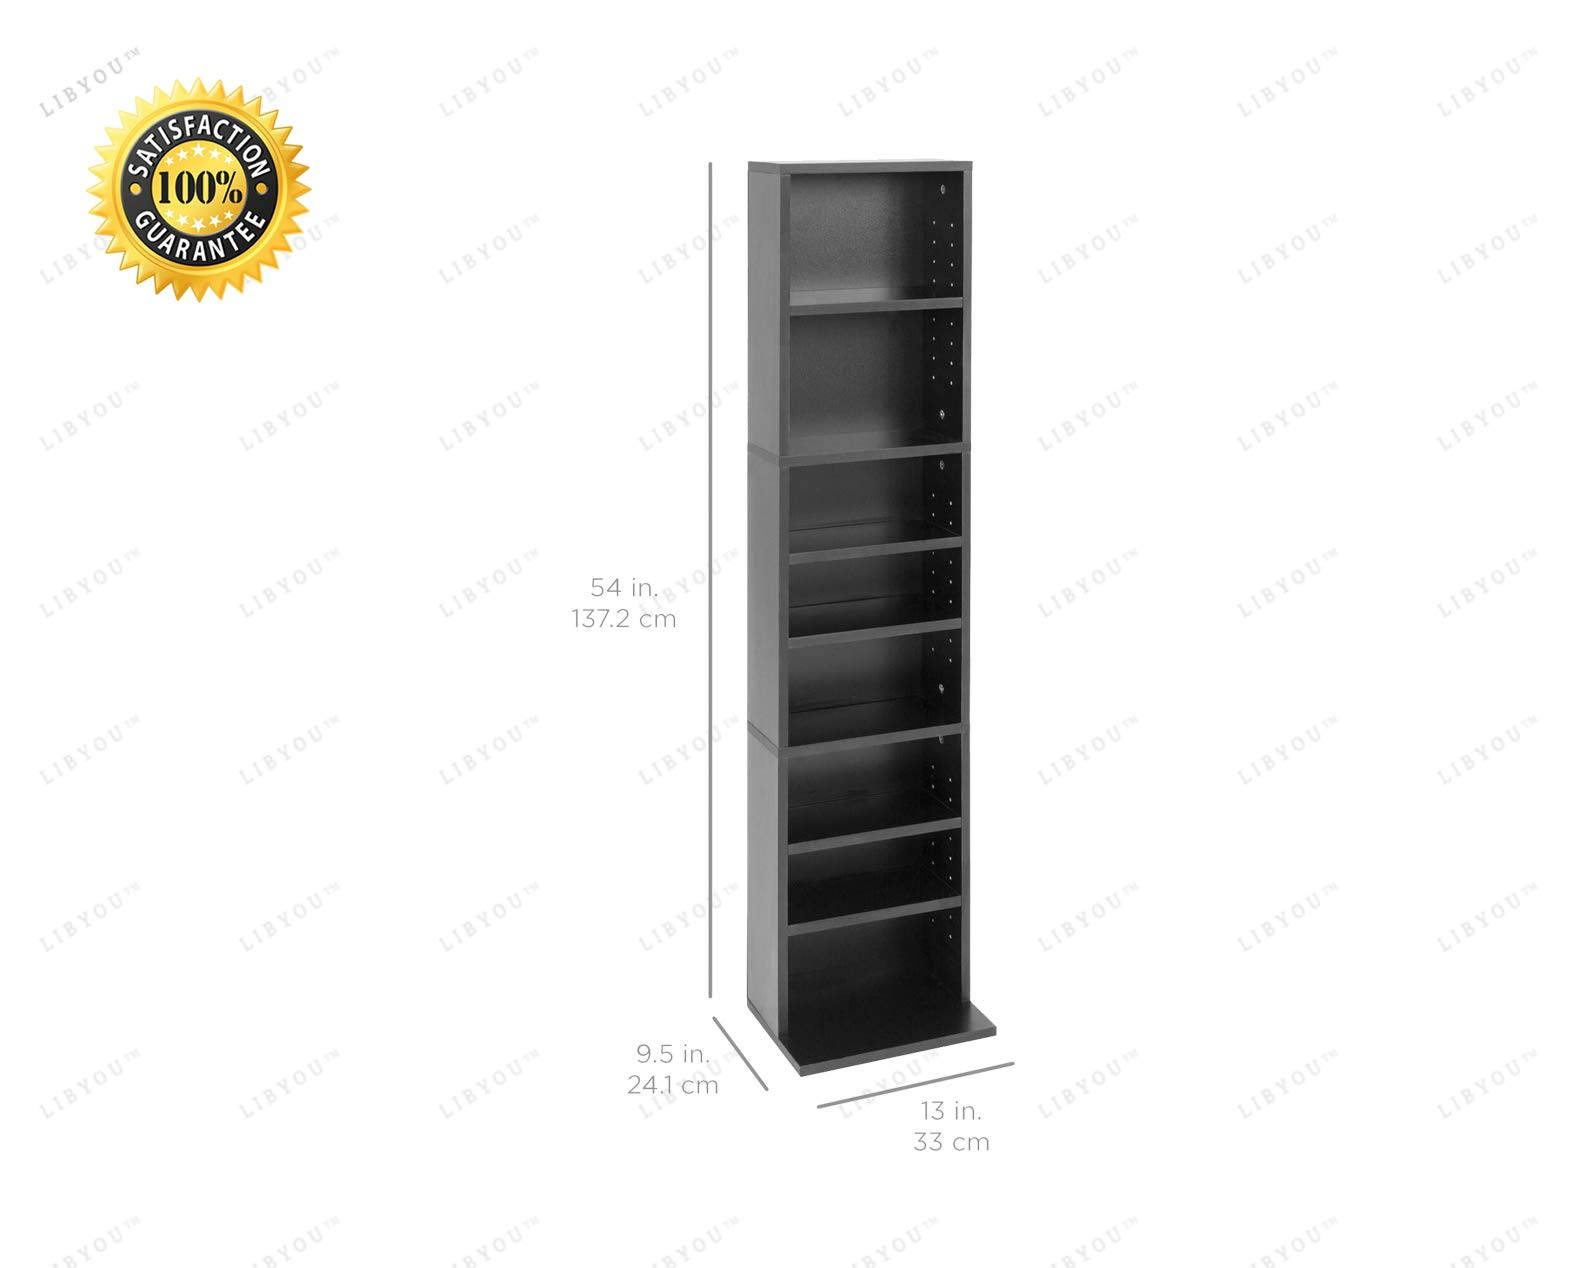 LIBYOU__Media Storage Tower,CD Rack,Bookcase, Shelf Storage Cabinet Tower, Storage Tower Rack, Wooden Media Storage Organizer, Bookshelf Display,Shelves for CDs, Books, Video Games by LIBYOU